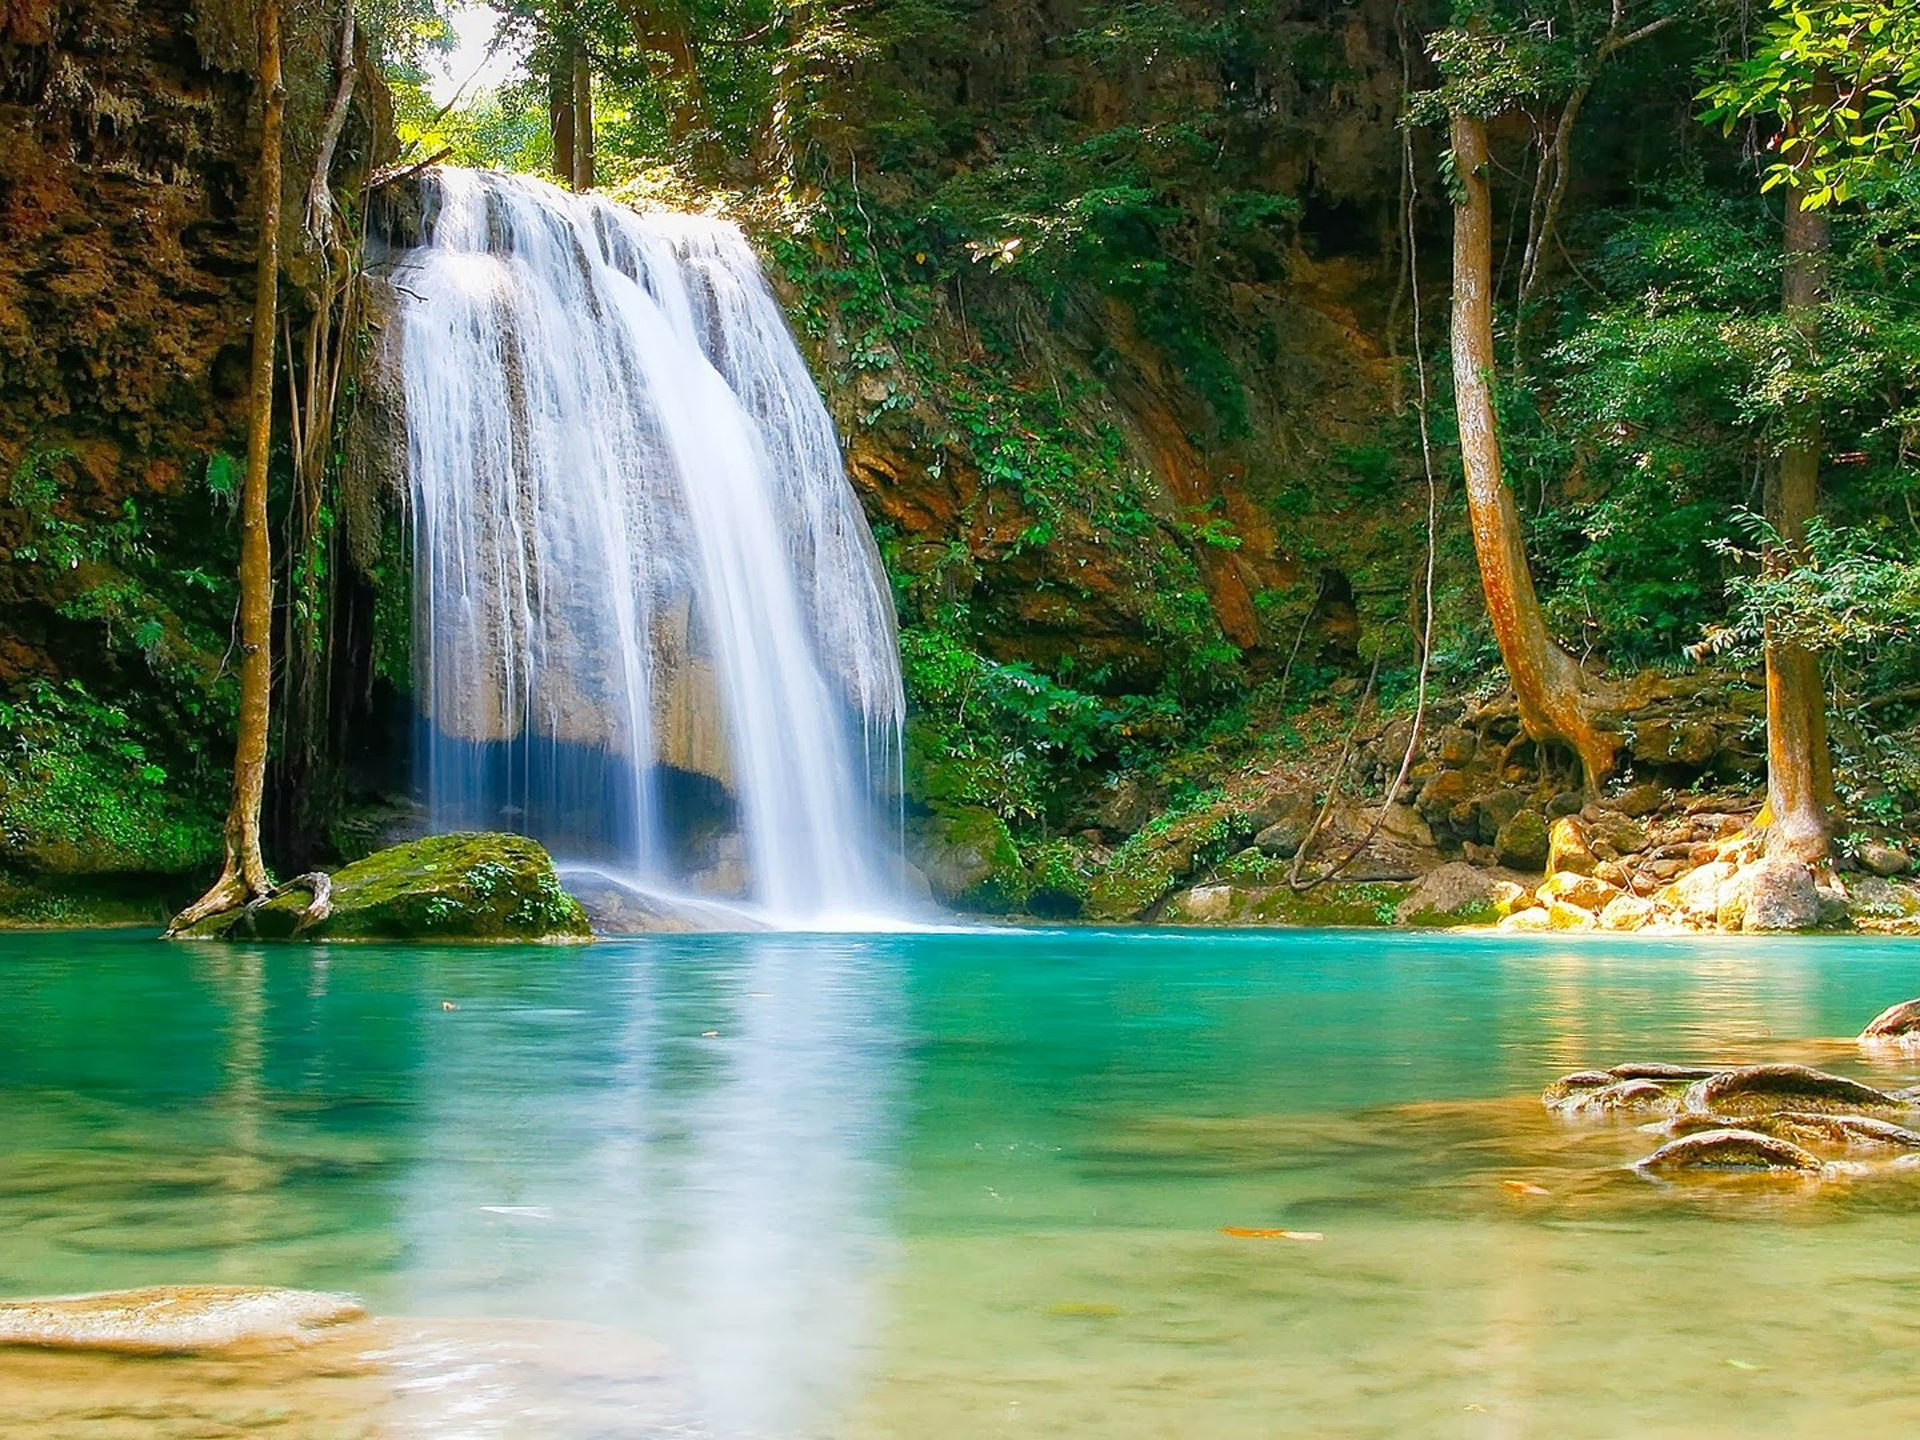 Waterfalls Desktop Wallpaper Forest Falls Nature Falls Pool With Turquoise Green Water Rock Coast